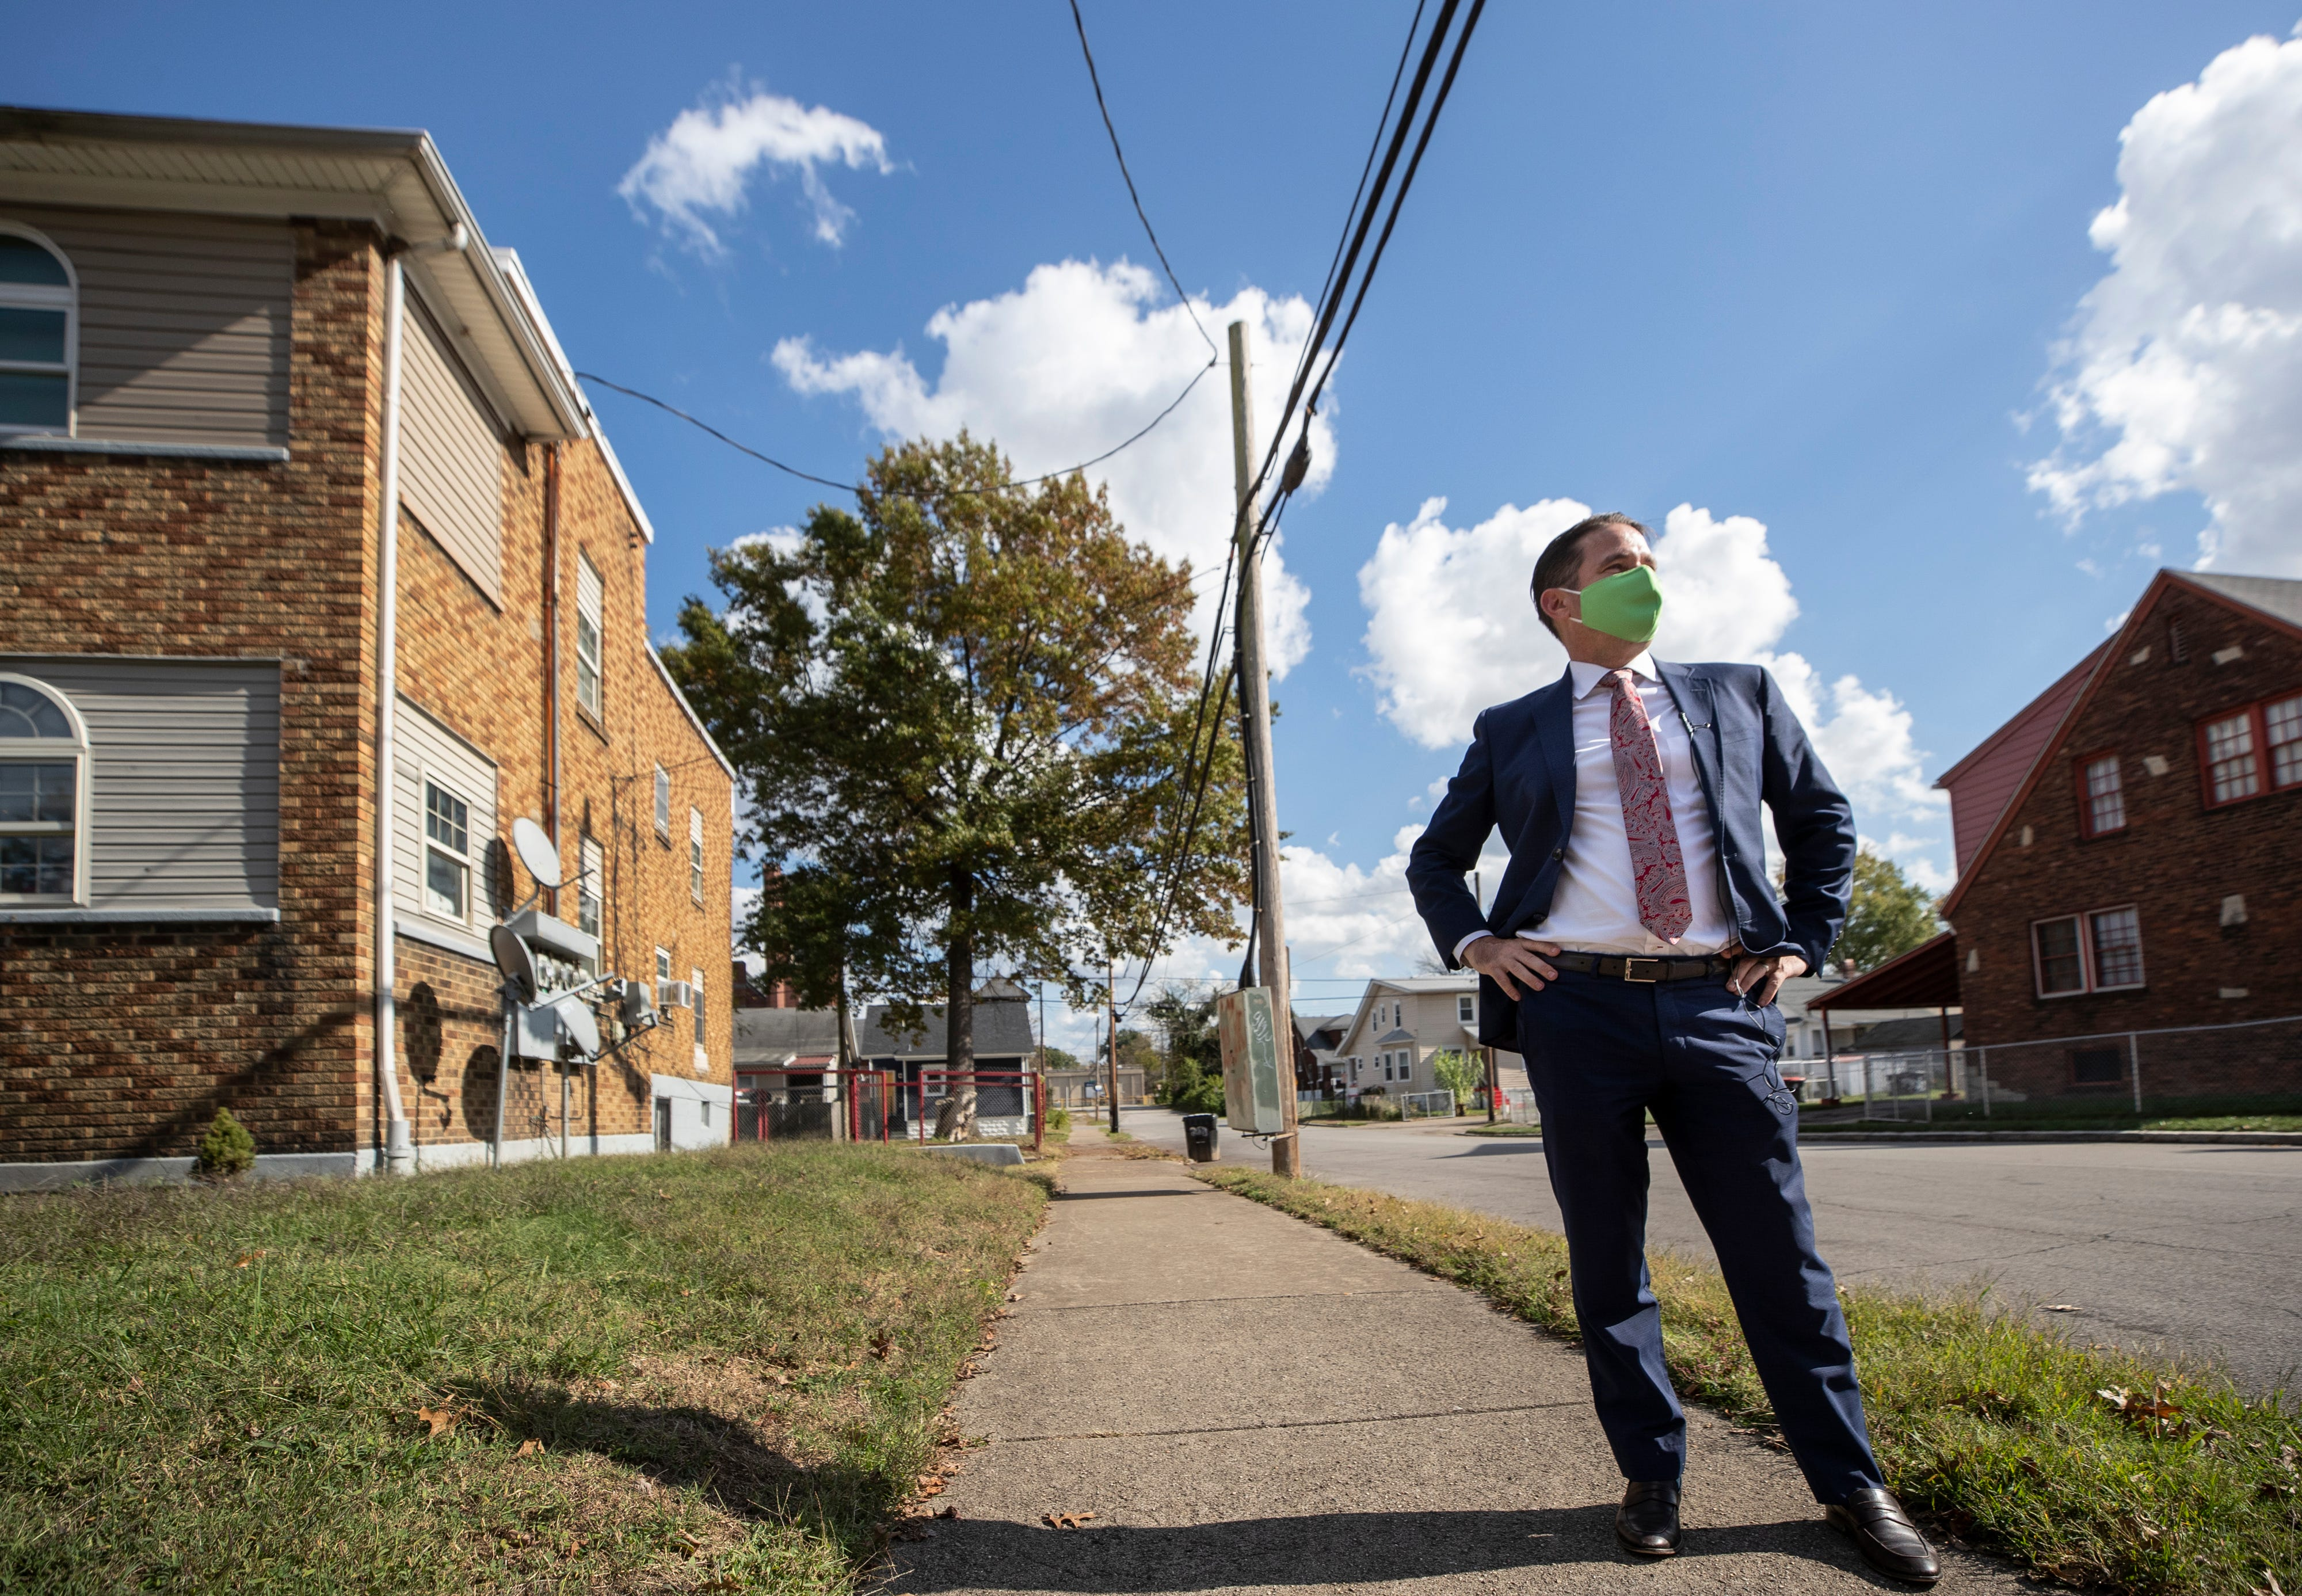 JCPS Superintendent Marty Pollio looks over the neighborhood at the corner of Cecil Avenue and Herman Street near the Academy @ Shawnee, where he was once a teacher, on Oct. 22, 2020.